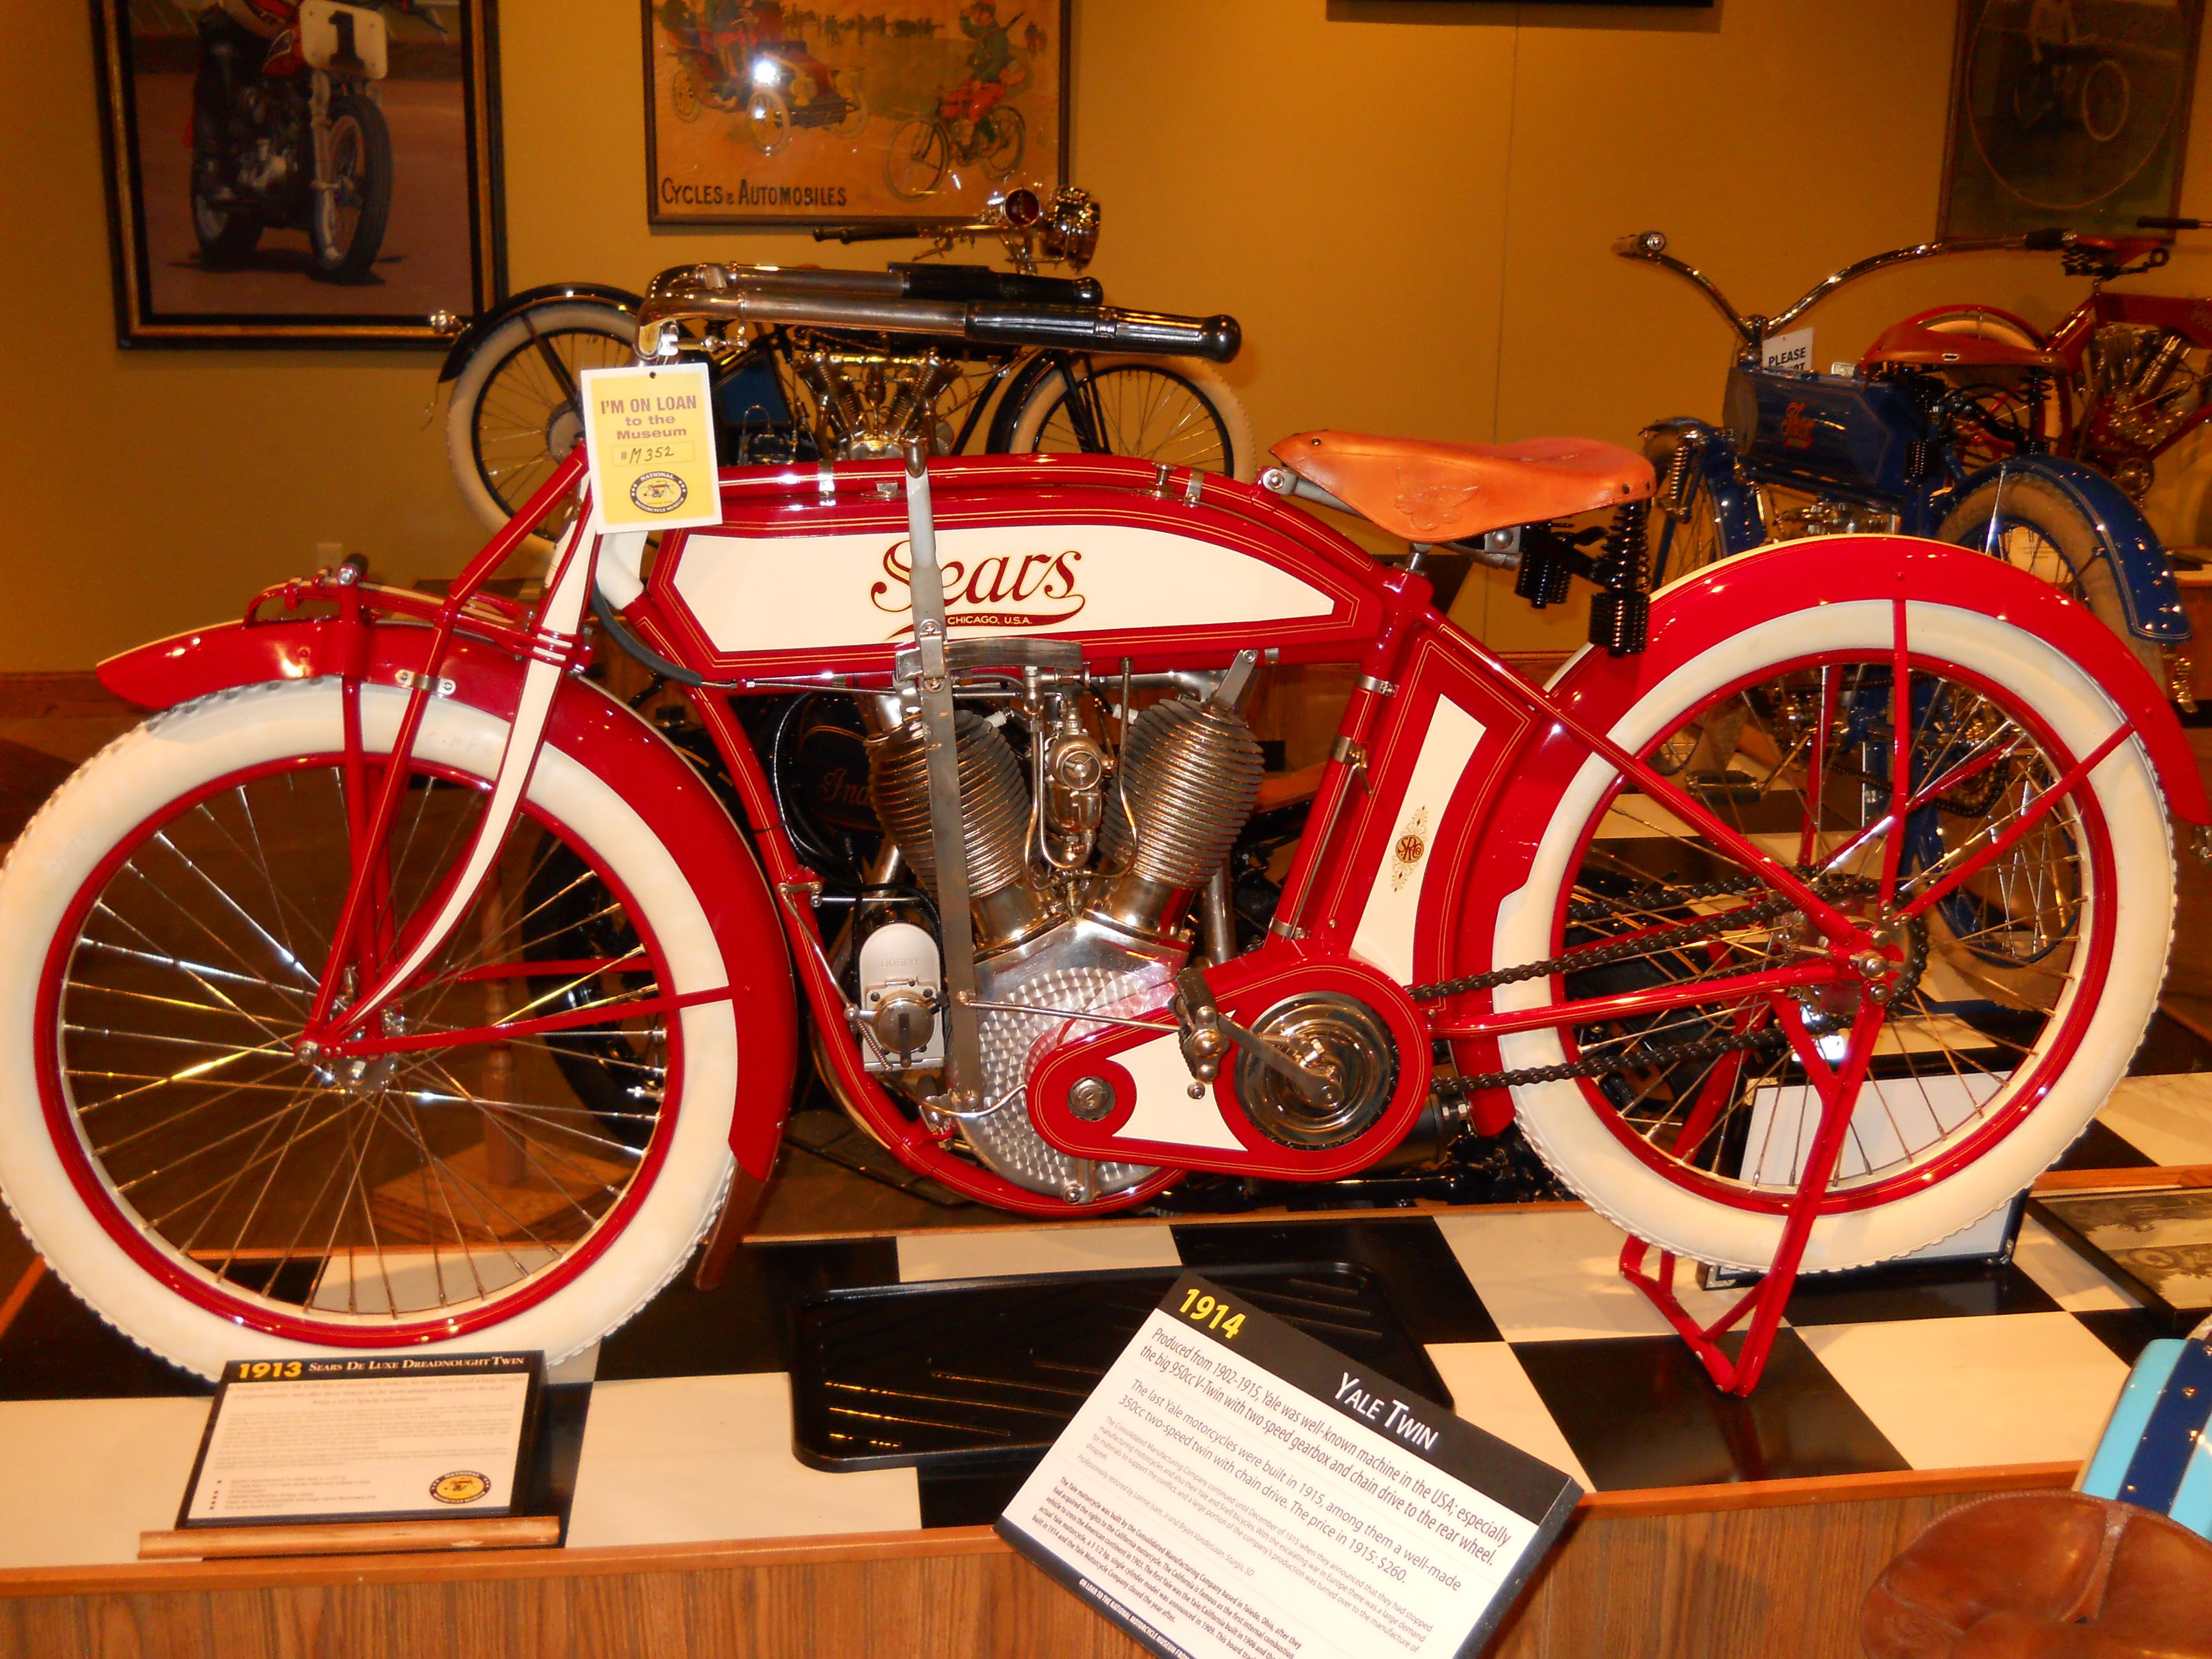 Sears Motorcycle Yeah Sears Made Bikes Avec Images